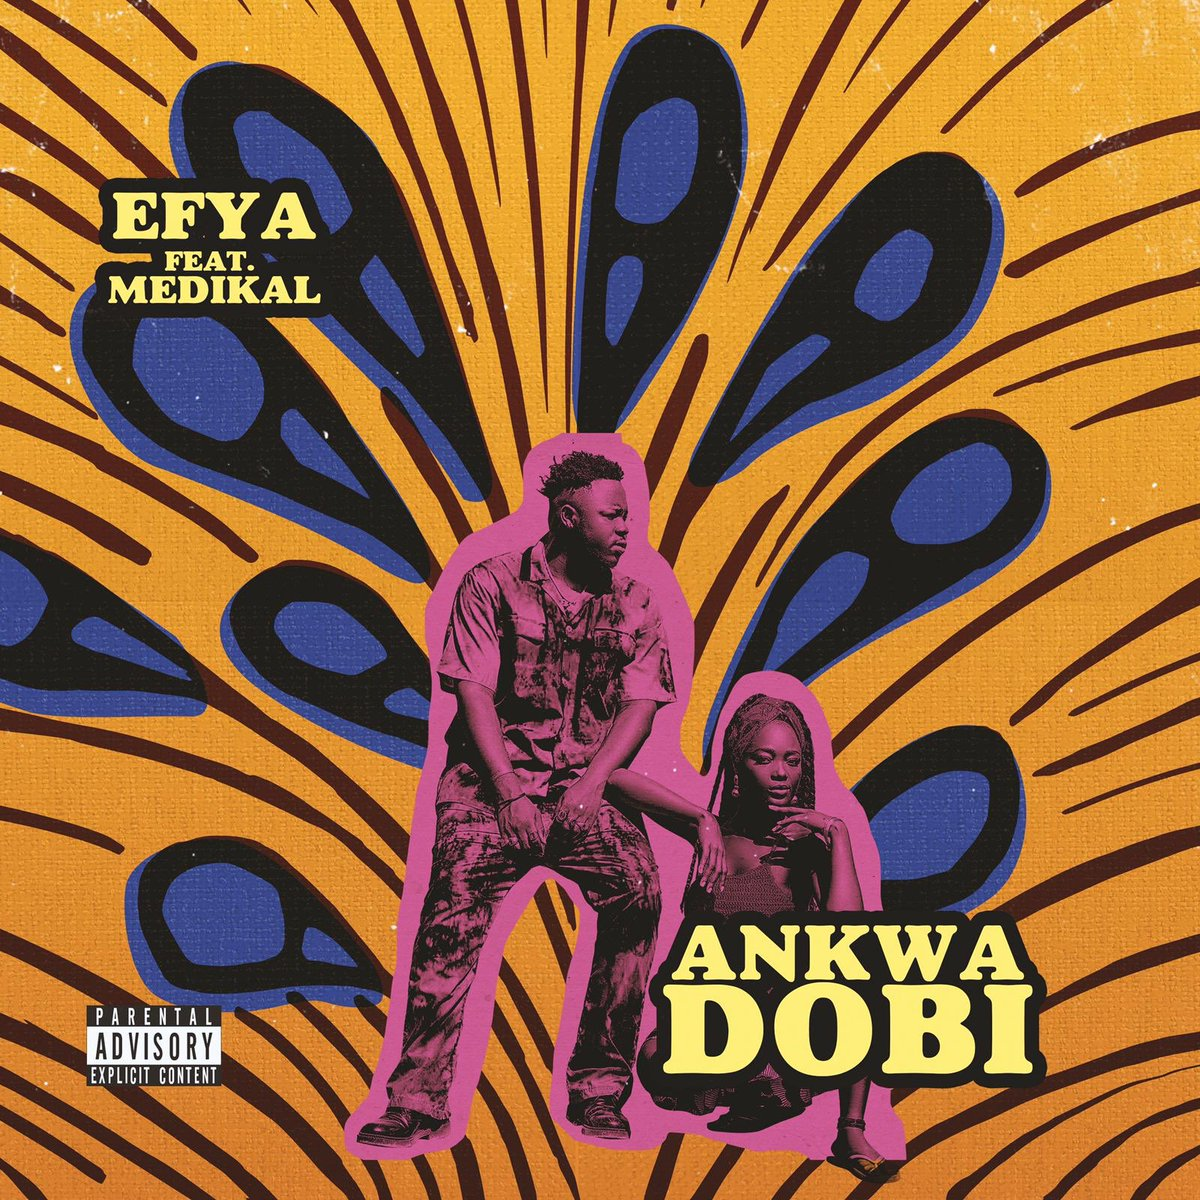 DOWNLOAD MP3: Efya ft Medikal – Ankwadobi